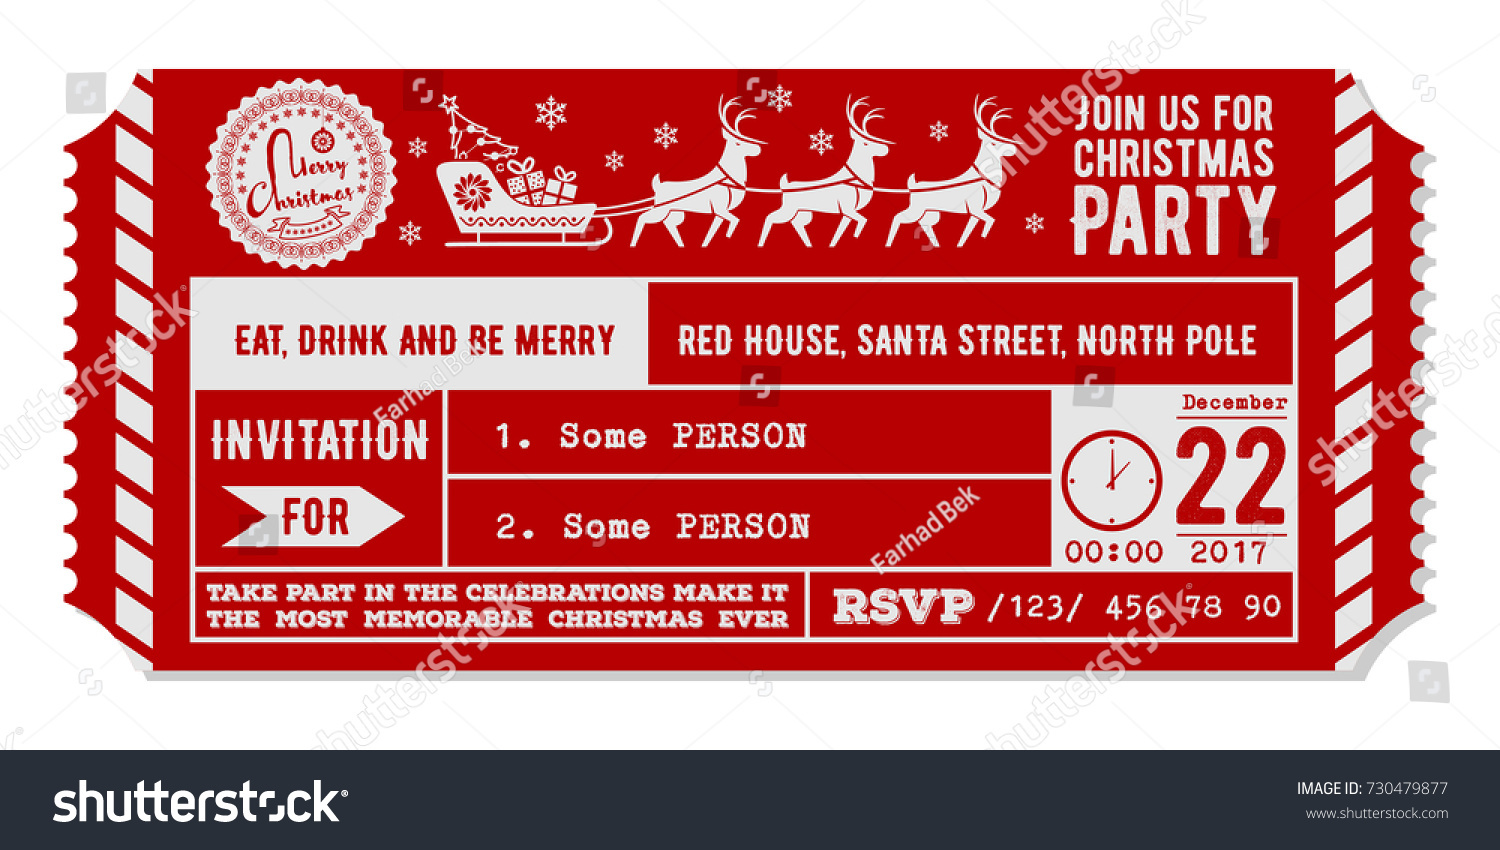 Vintage Christmas Party Invitations Gallery - Party Invitations Ideas